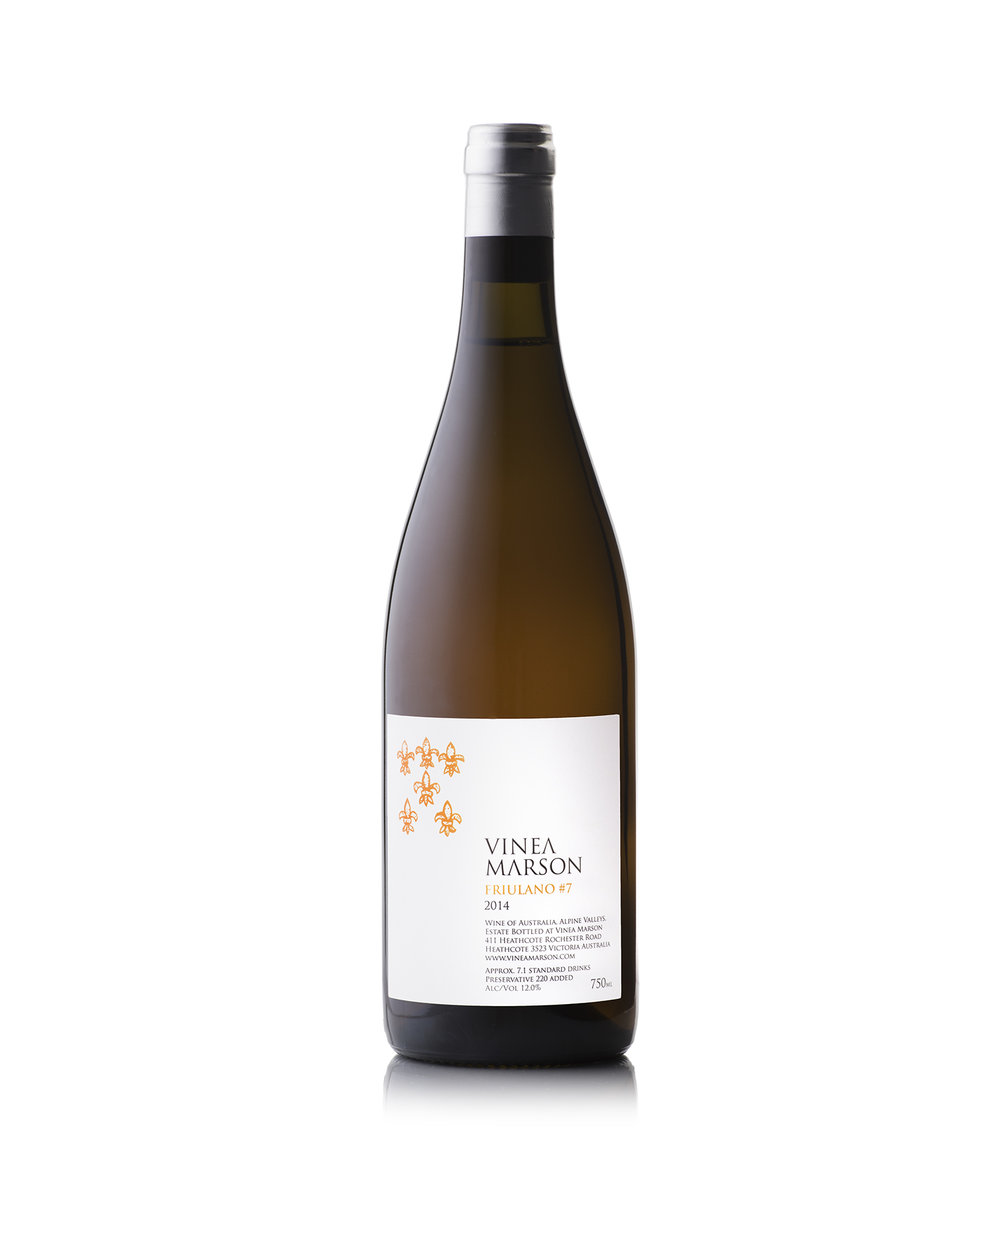 2014 Friulano #7 - 12.0% alc/volVinea Marson's first orange wine is made from fruit grown for Vinea Marson in the Alpine Valleys of north-eastern Victoria.The Friulano #7 possesses a vibrant orange hue, due to the seven days it spent on skins during fermentation. It displays enticing aromas of poached pears and orange blossom, followed by elegant phenolics on the palate and a pleasant, lengthy finish. This full-bodied and textured wine is best enjoyed with white meat such as veal, chicken and pork and fish including salmon and snapper.